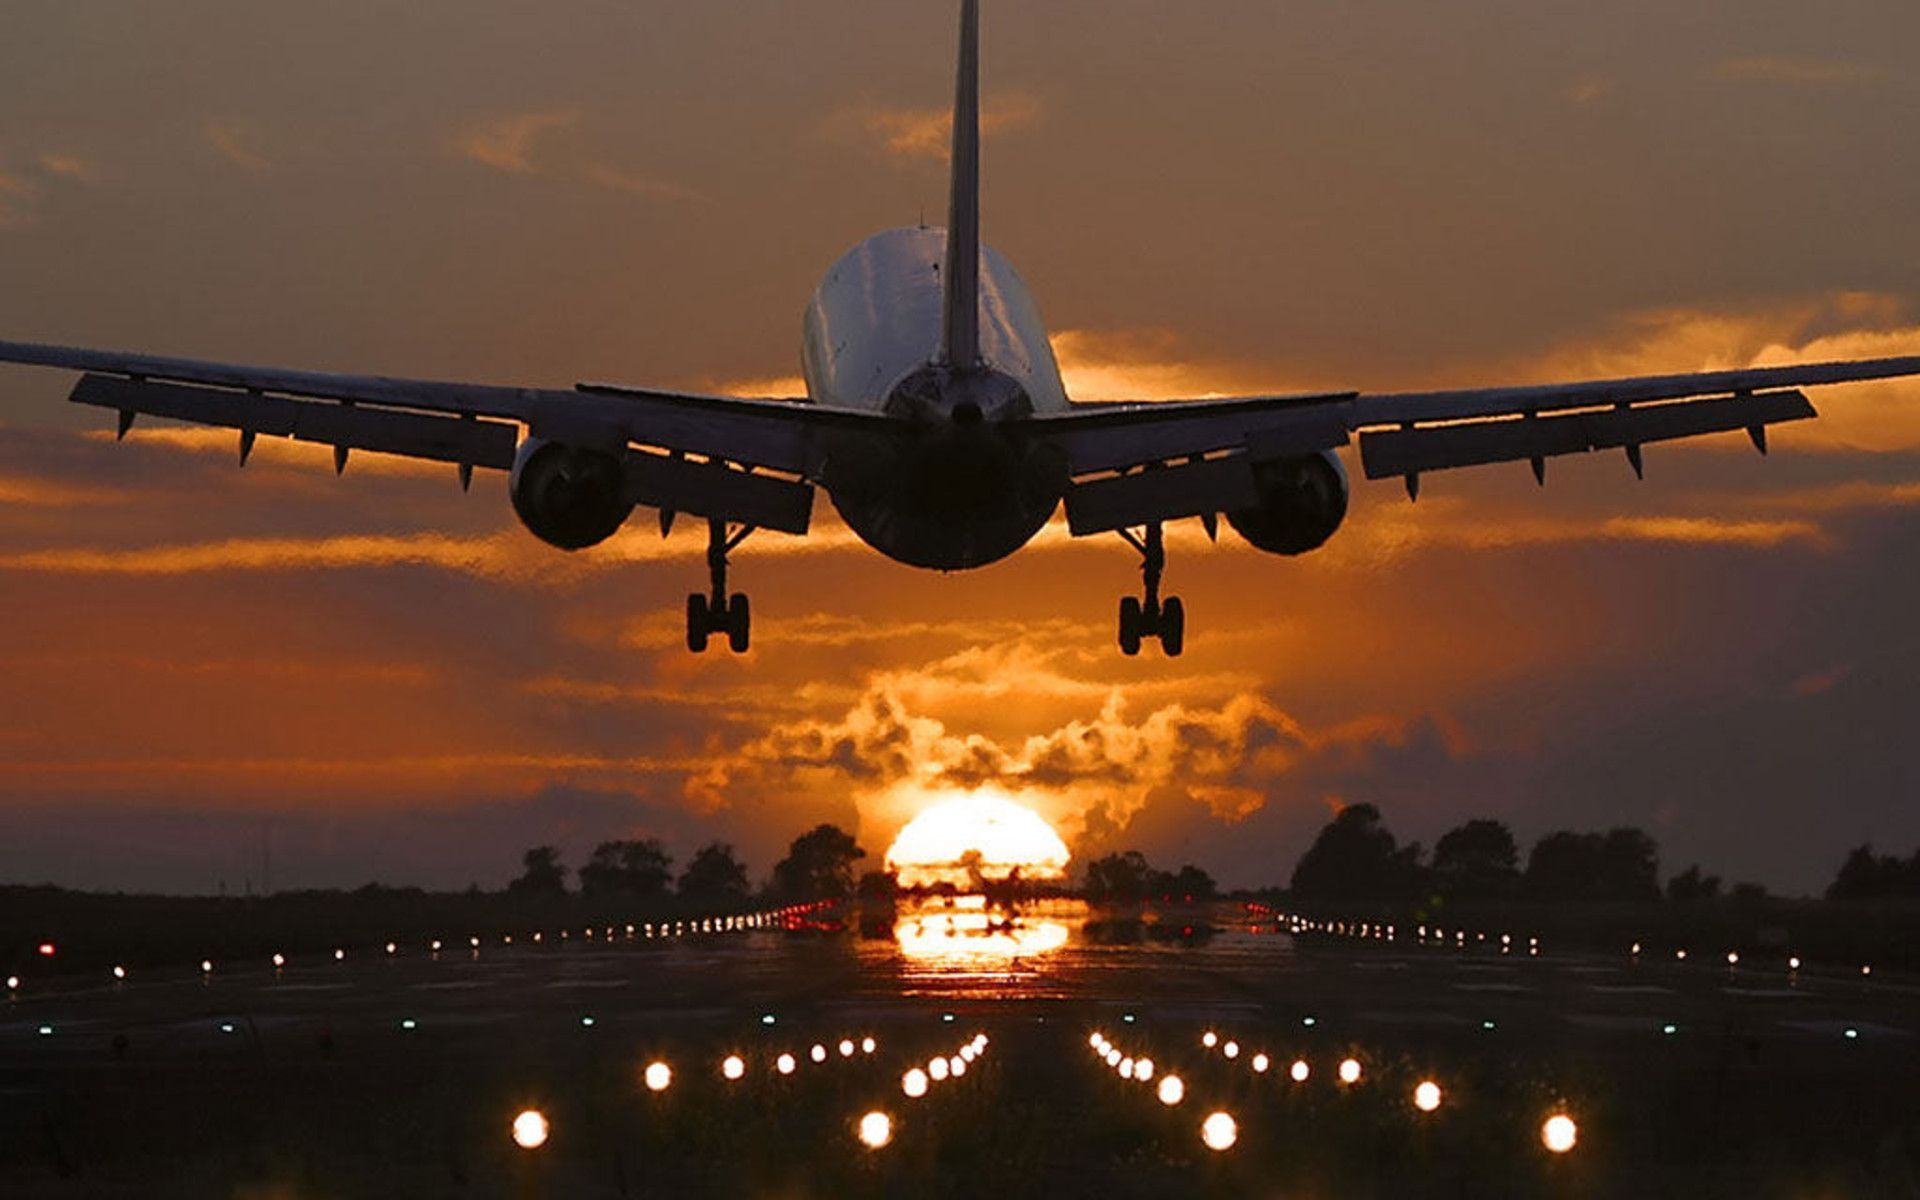 Aircraft Wallpapers HD Plane photography Airplane landing Aircraft 1920x1200